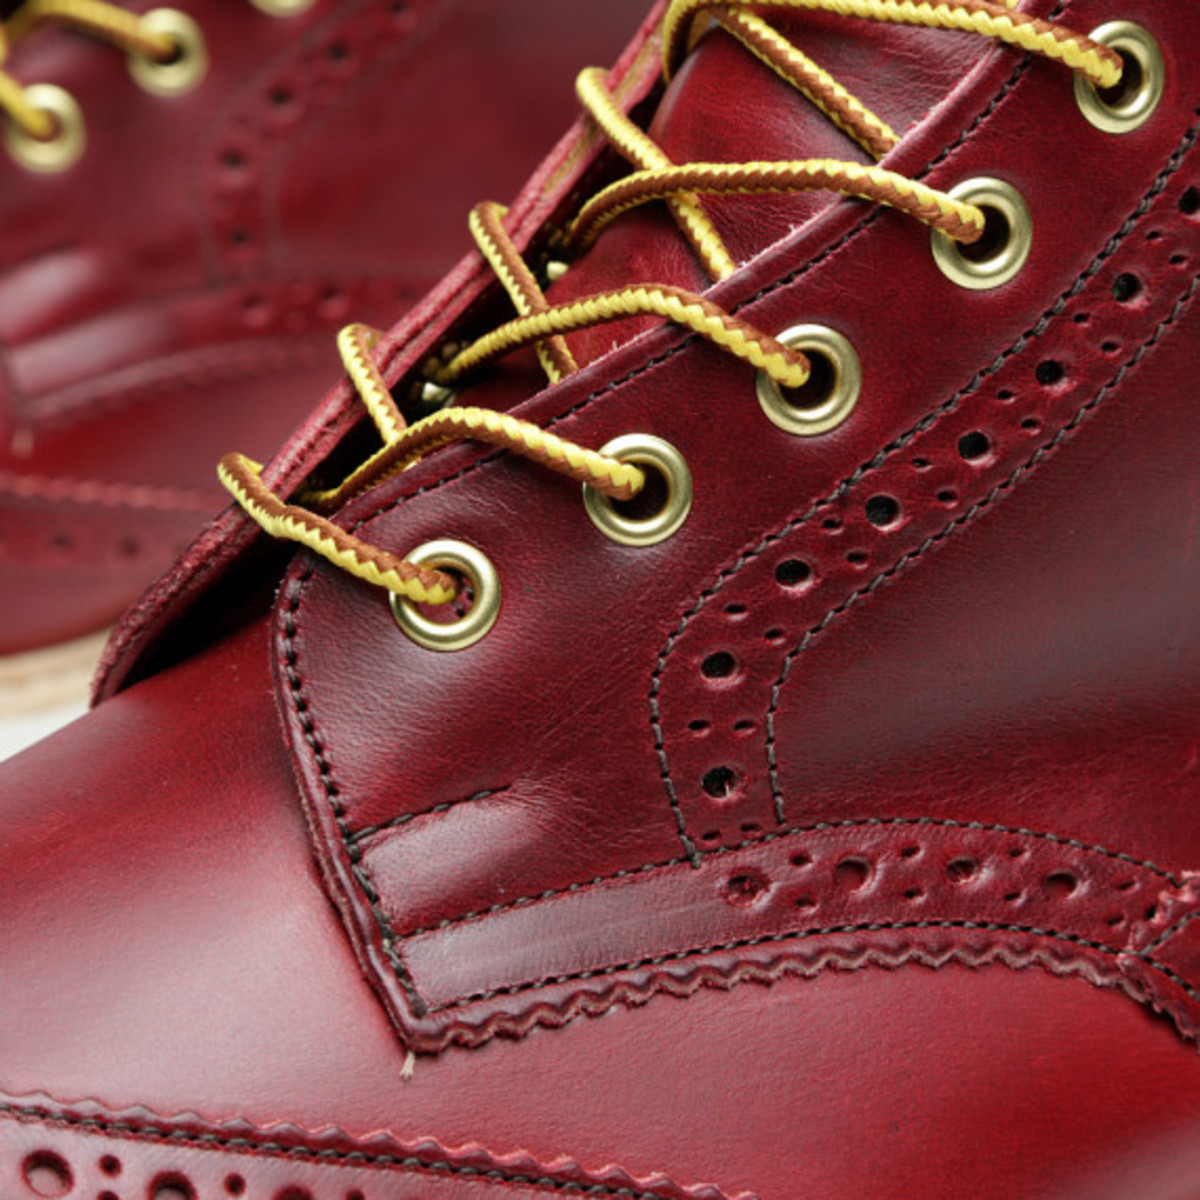 end-trickers-vibram-sole-stow-boot-18